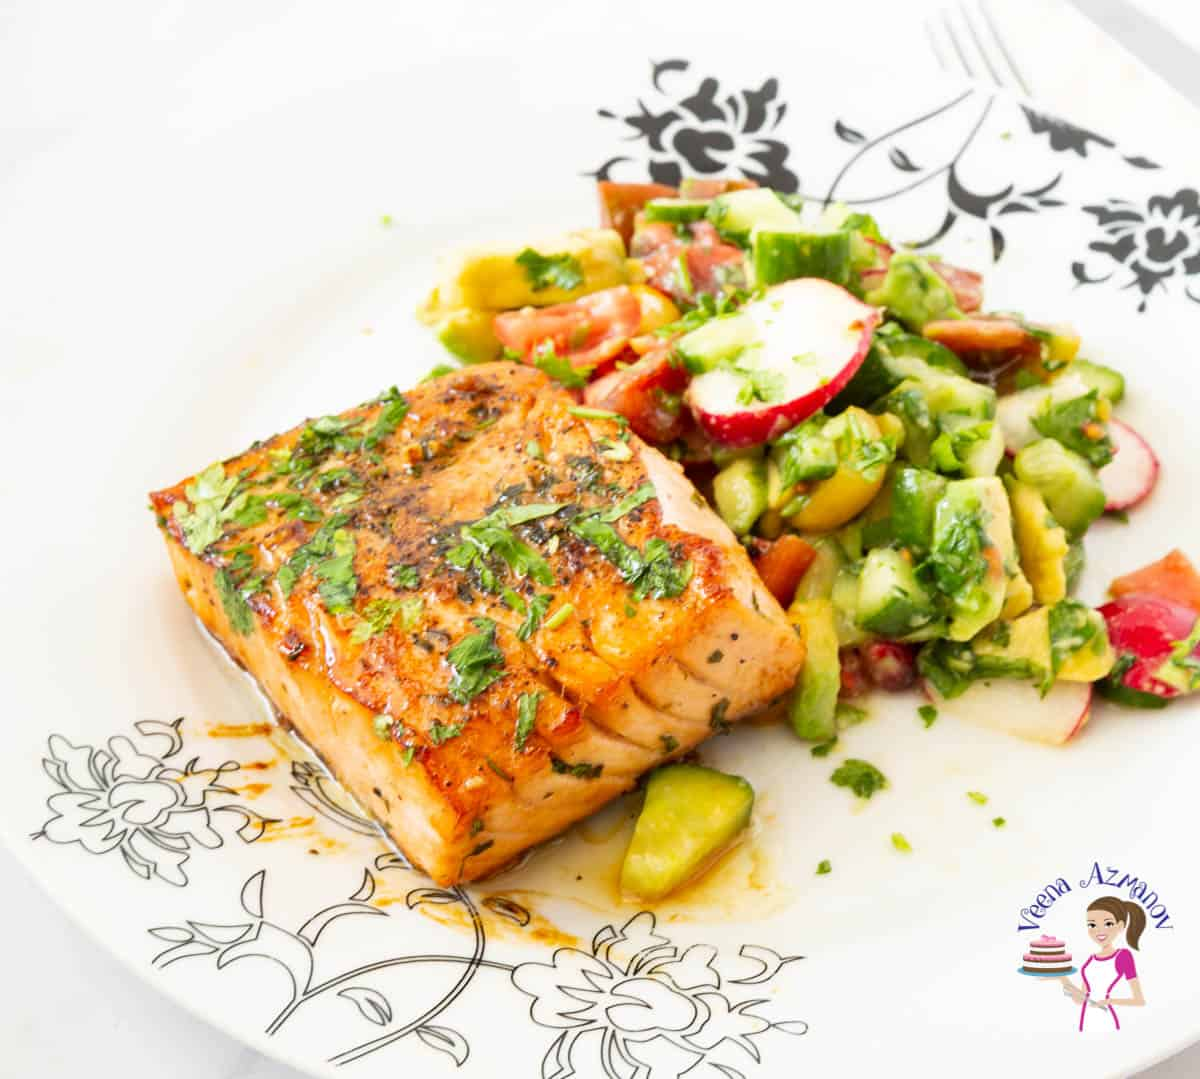 A white plate with salmon and avocado plate